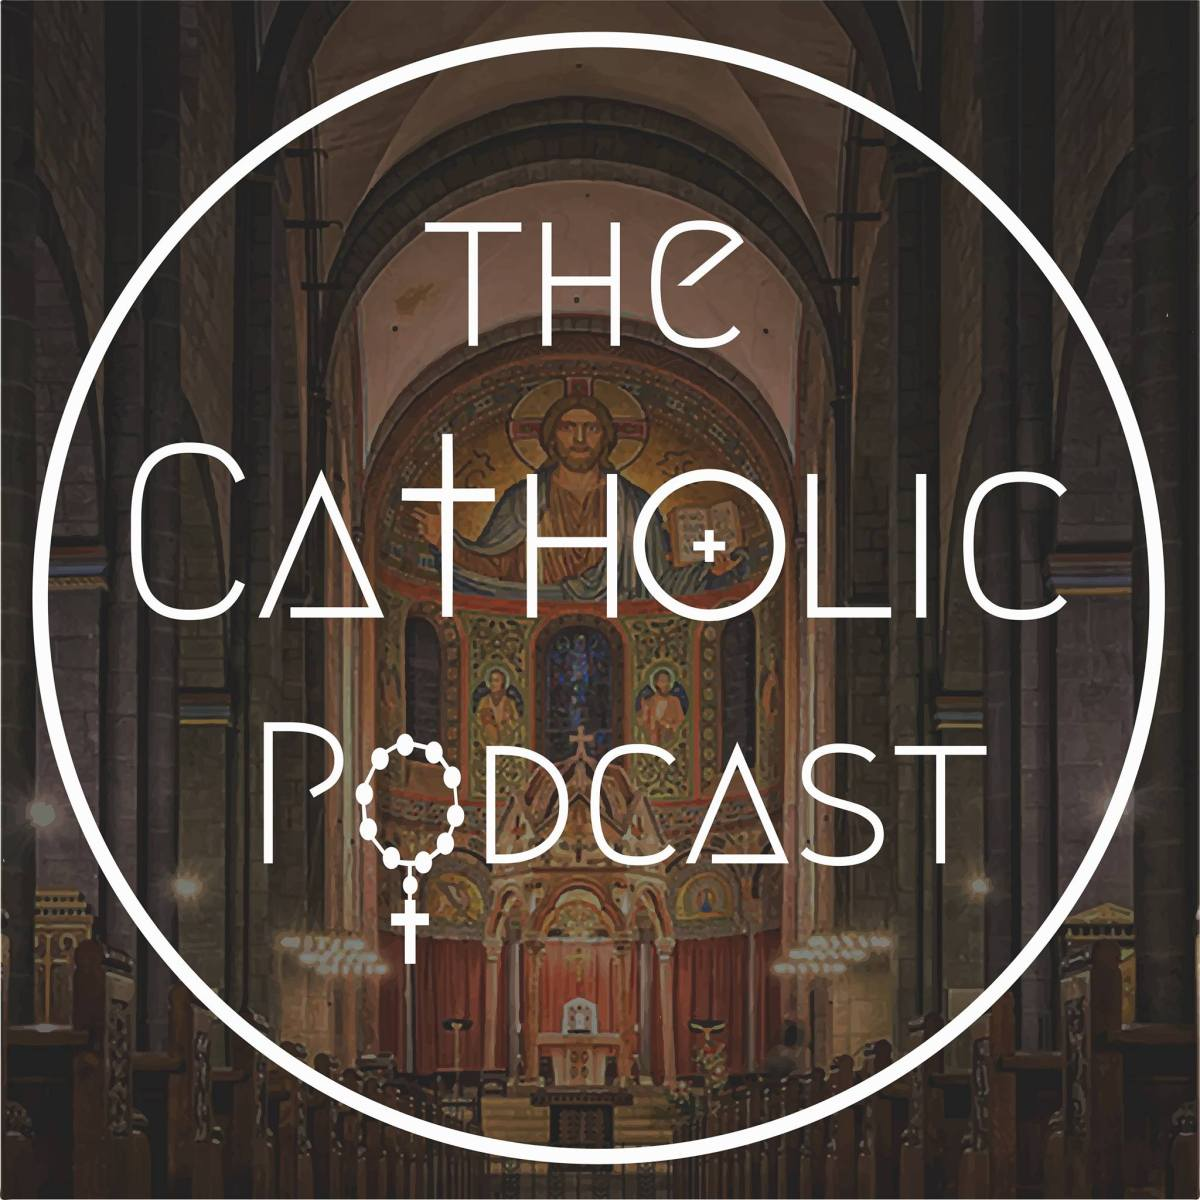 Contest winners + I'm on The Catholic Podcast with Joe Heschmeyer